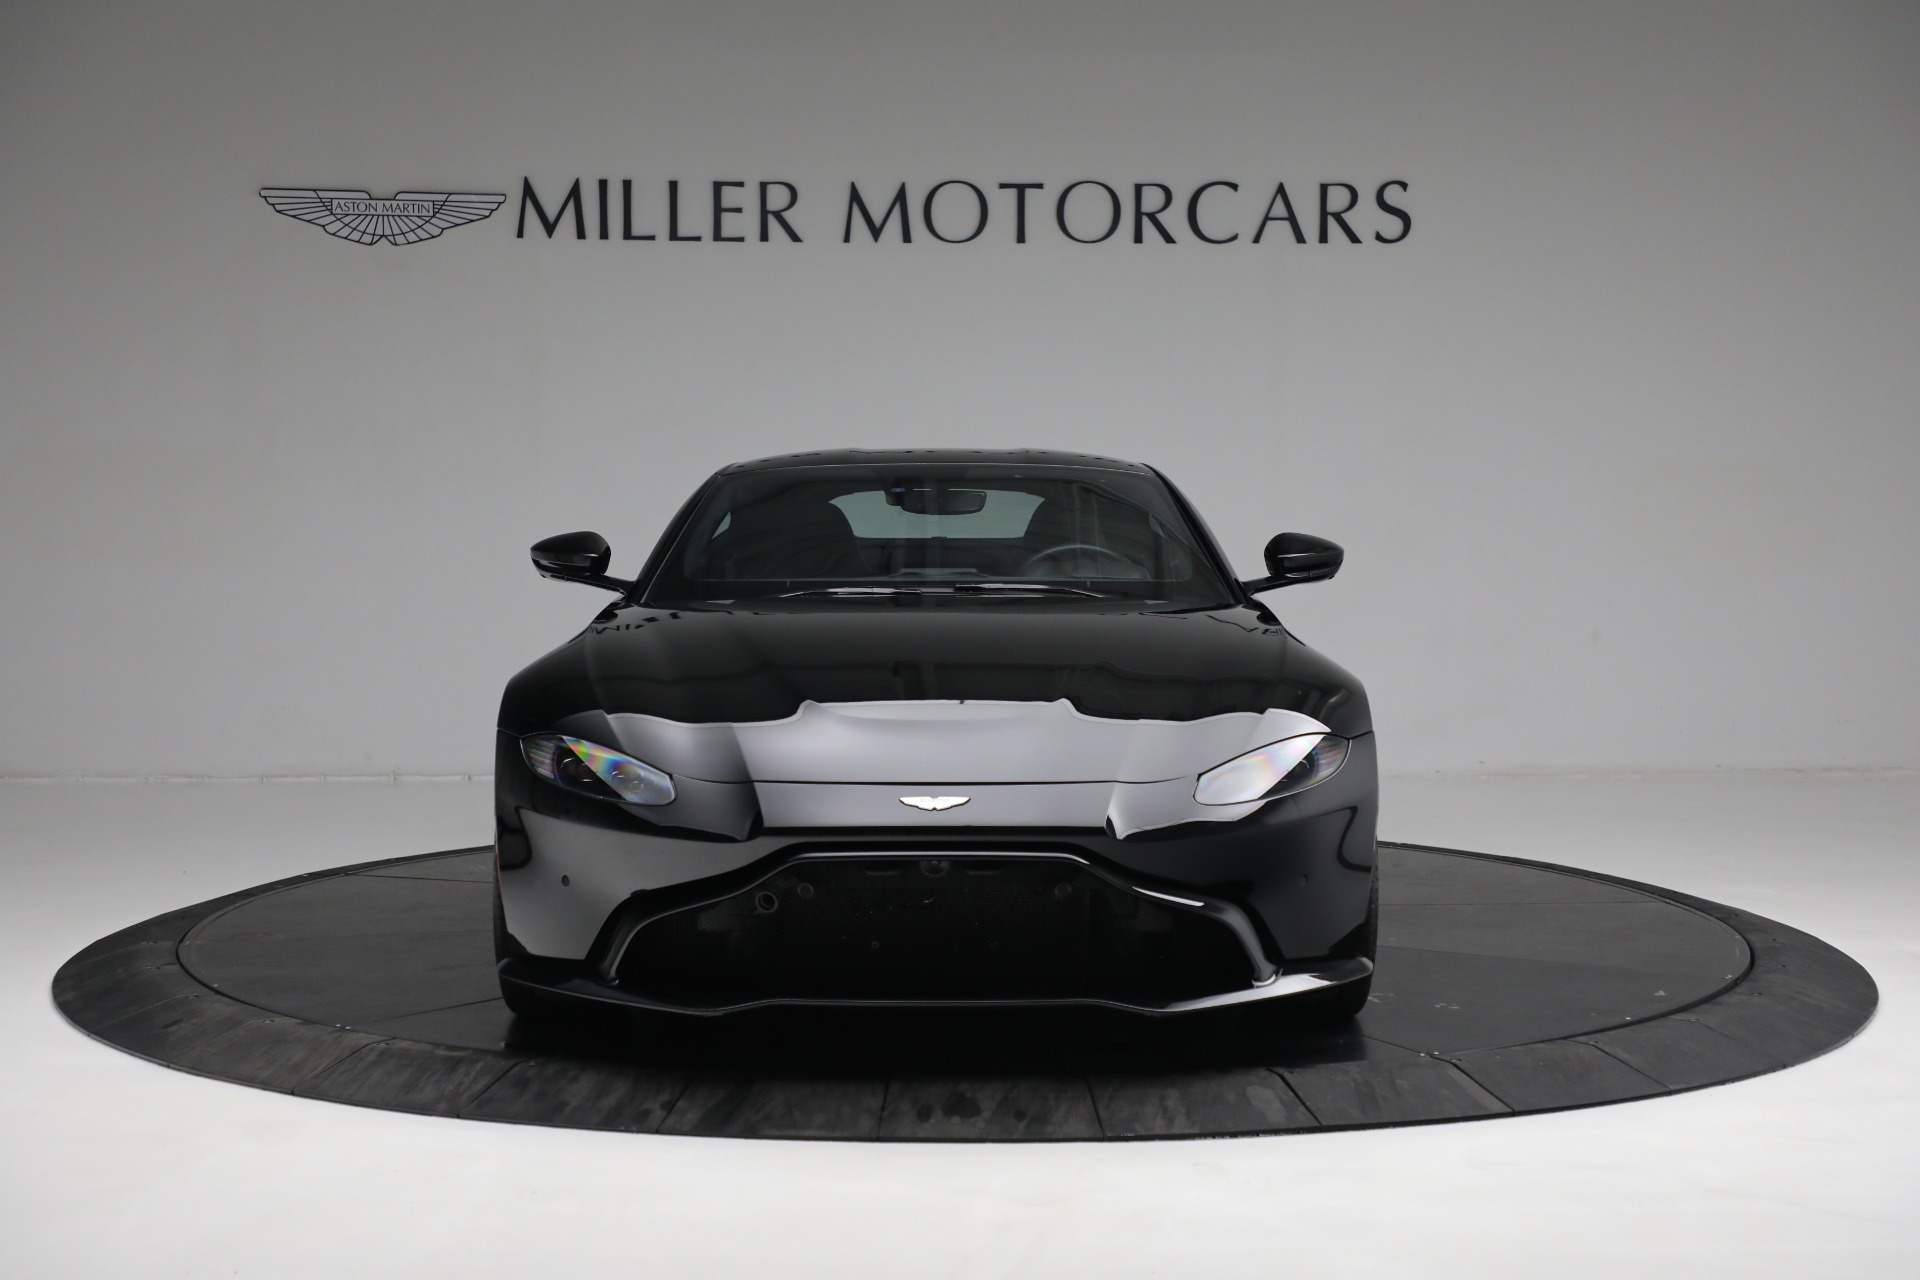 New 2019 Aston Martin Vantage V8 For Sale In Westport, CT 3307_p10